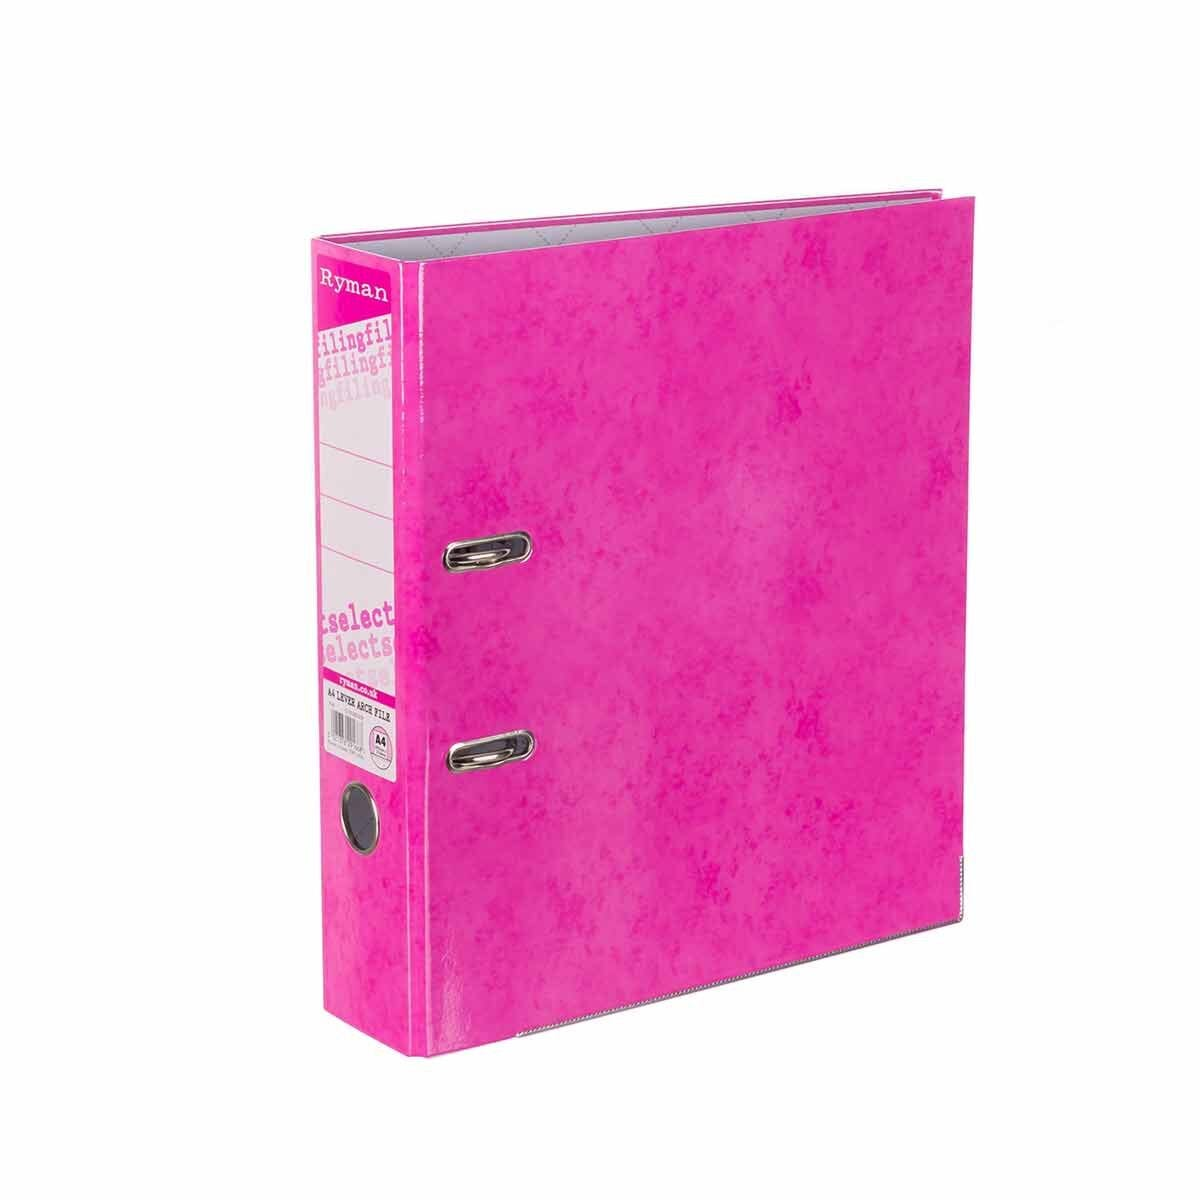 Ryman Select A4 Lever Arch File Pink